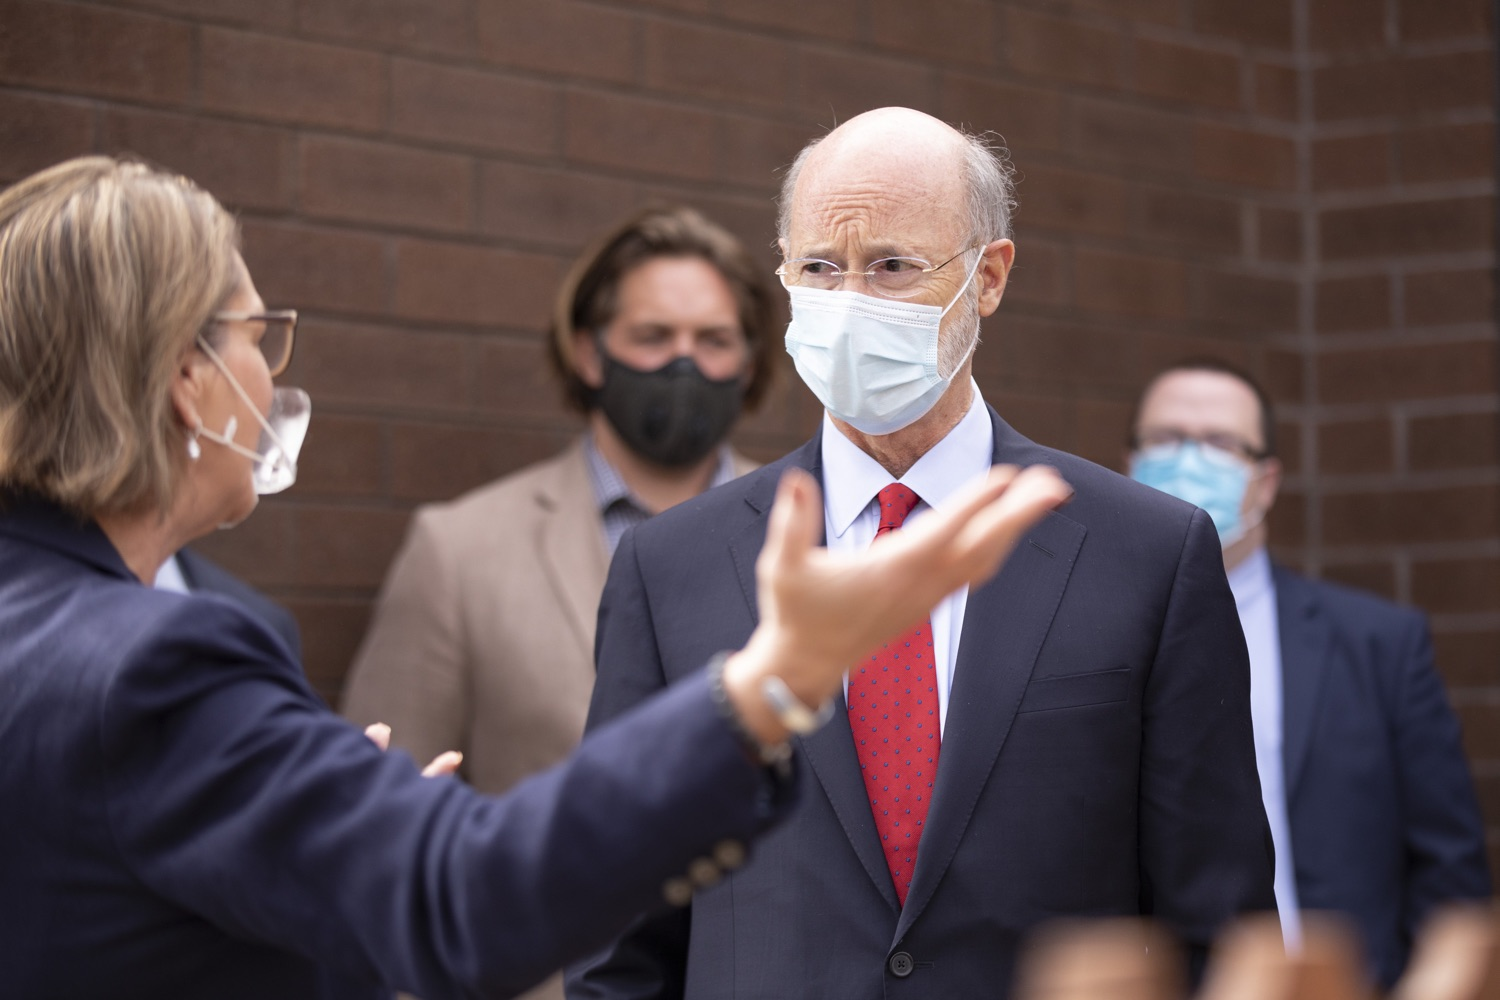 """<a href=""""https://filesource.wostreaming.net/commonwealthofpa/photo/18310_gov_adult_use_cannabis_dz_014.jpg"""" target=""""_blank"""">⇣Download Photo<br></a>Governor Tom Wolf touring The Mountain Center.Governor Tom Wolf visited The Mountain Center in Tobyhanna, Monroe County today to talk about the economic growth potential and restorative justice benefits of legalizing adult-use cannabis, something the state General Assembly has not yet done despite multiple requests from the governor and Lieutenant Governor John Fetterman to take up legislation this fall.  Tobyhanna, PA  October 13, 2020"""